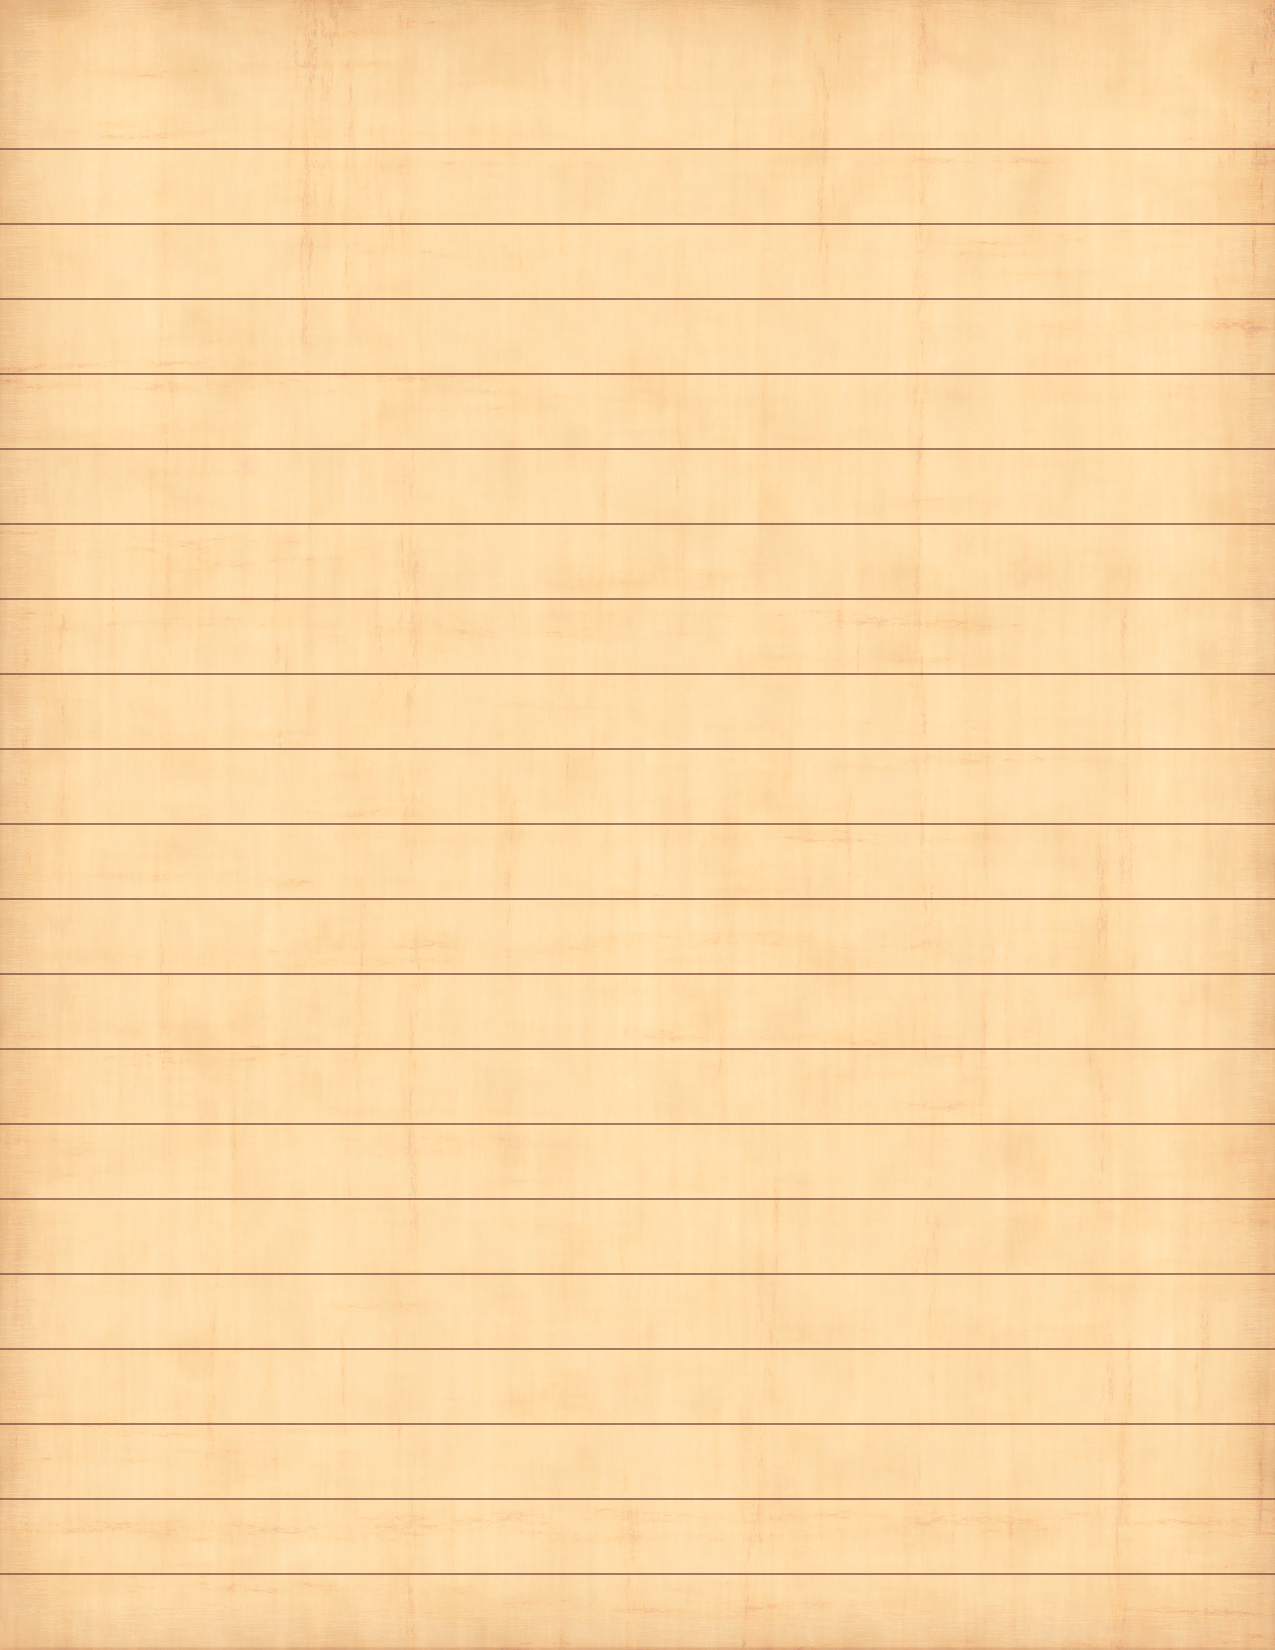 Yellow Notebook Paper Template Handwriting Templates Pictures